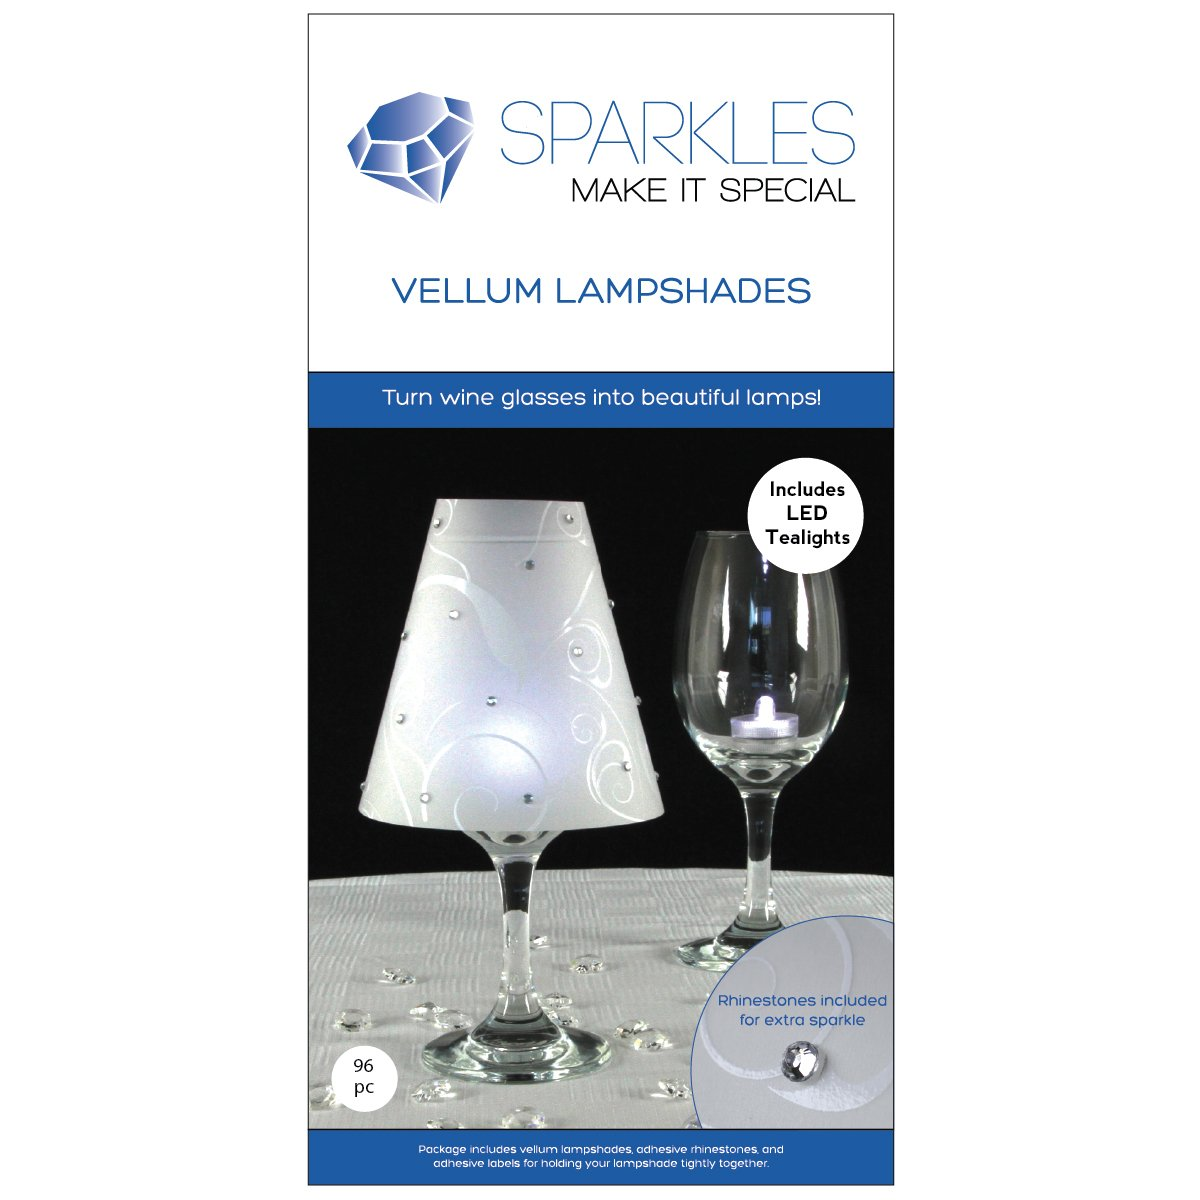 Sparkles Make It Special 96 pc Wine Glass Lamp Shades with Rhinestones and LED Tea Lights - Wedding Table Decoration - White Vellum Swirl Print by Sparkles Make It Special